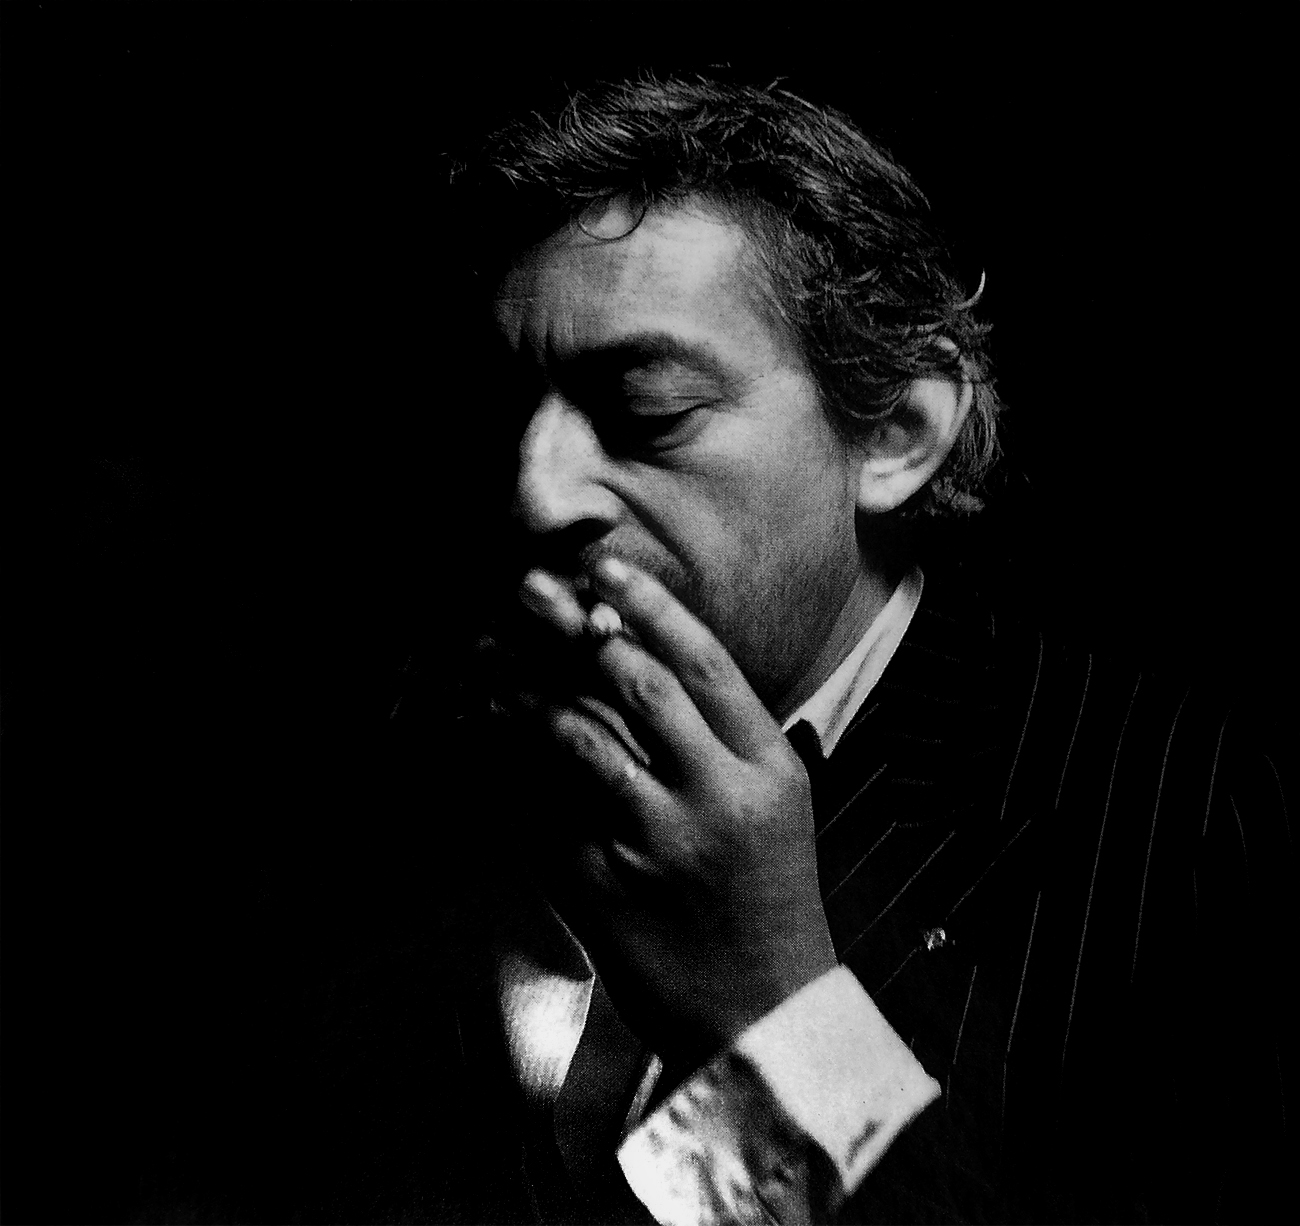 serge gainsbourg histoire de melody nelson 1971 papyblues. Black Bedroom Furniture Sets. Home Design Ideas